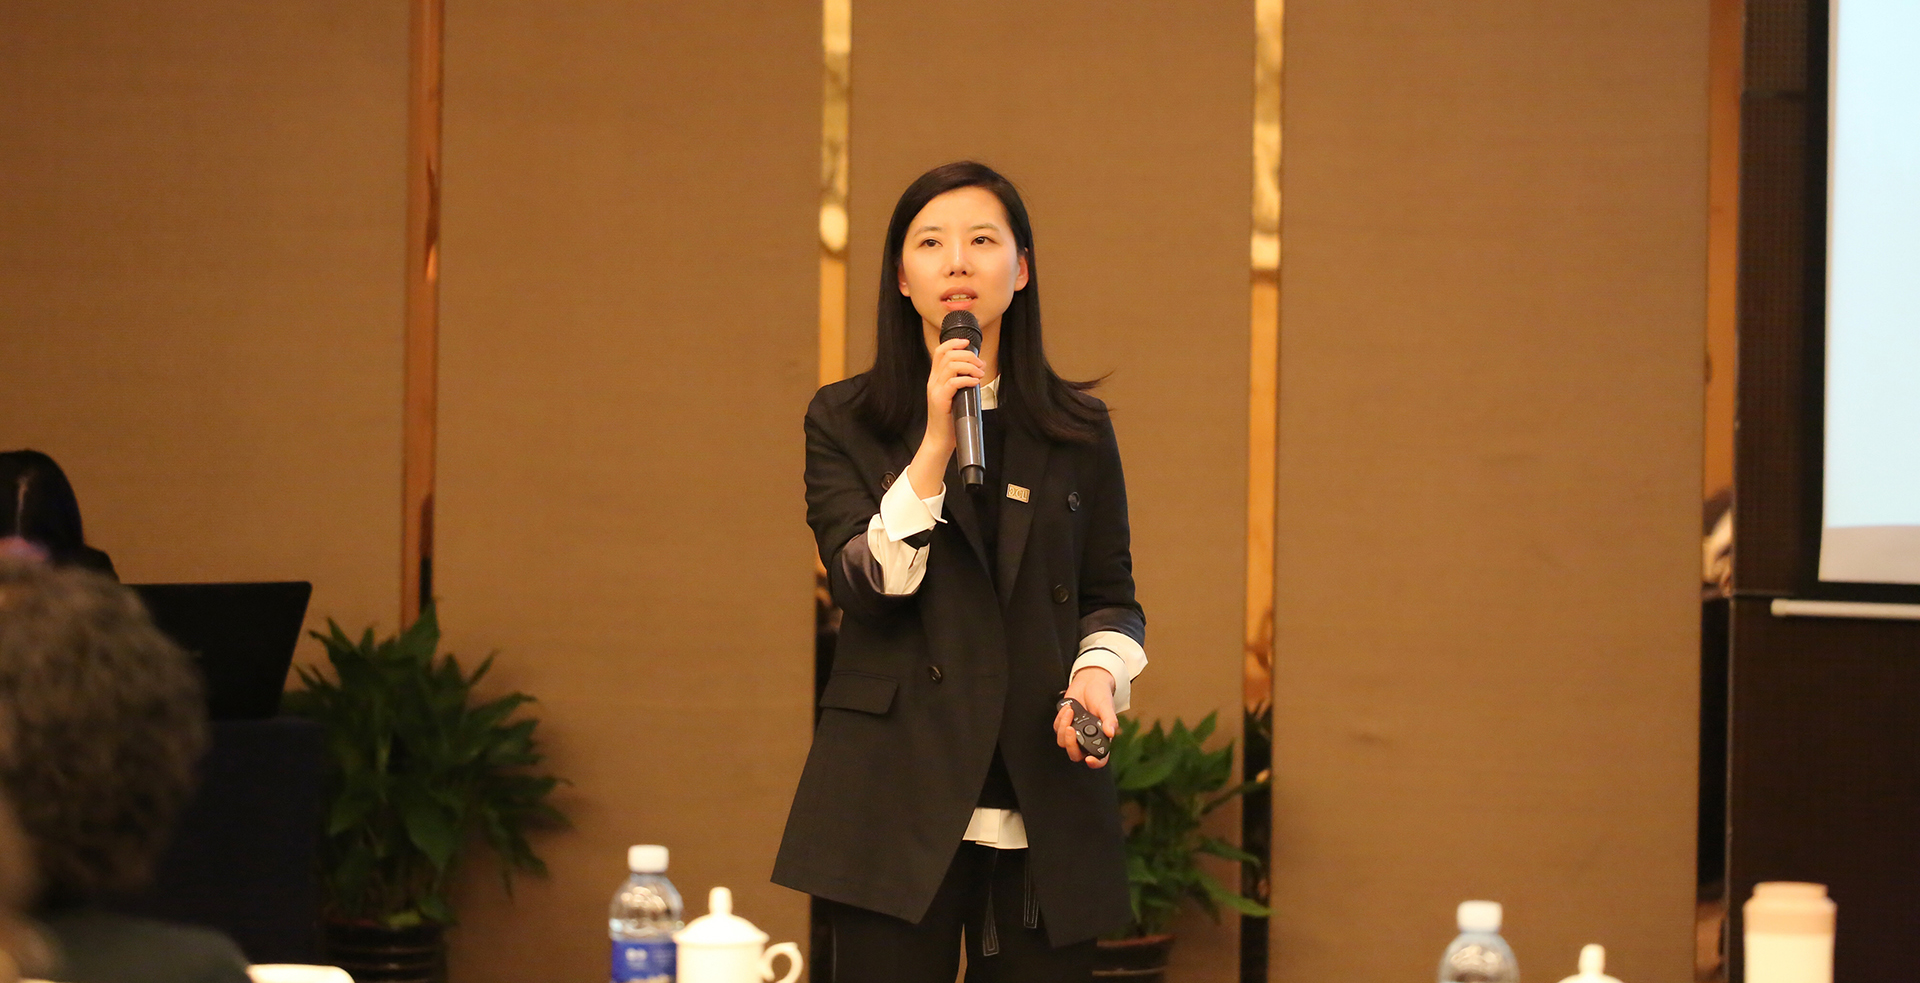 Selina Zheng, President of DCL Investments: It's currently the best time for investment in distressed assets